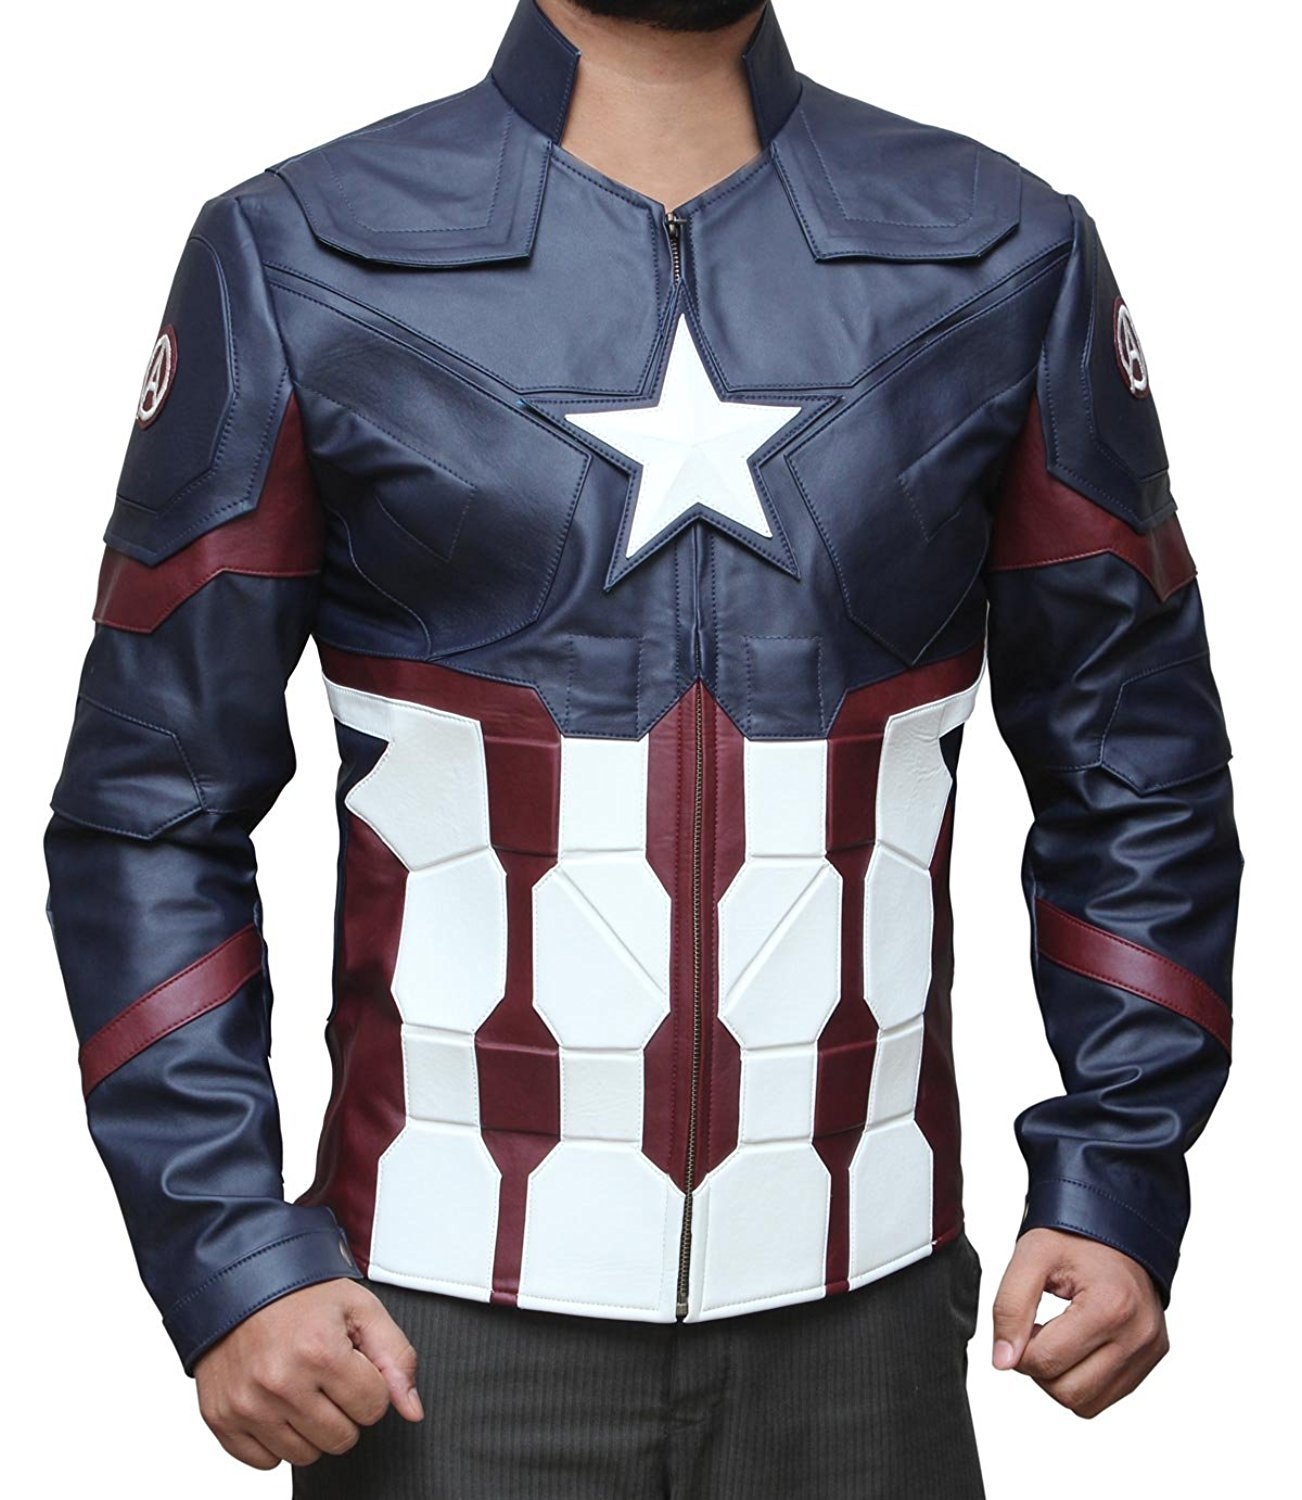 BlingSoul Captain America Winter Soldier Jacket - Navy Blue Jackets For Men (S, Civil War Jacket) by BlingSoul